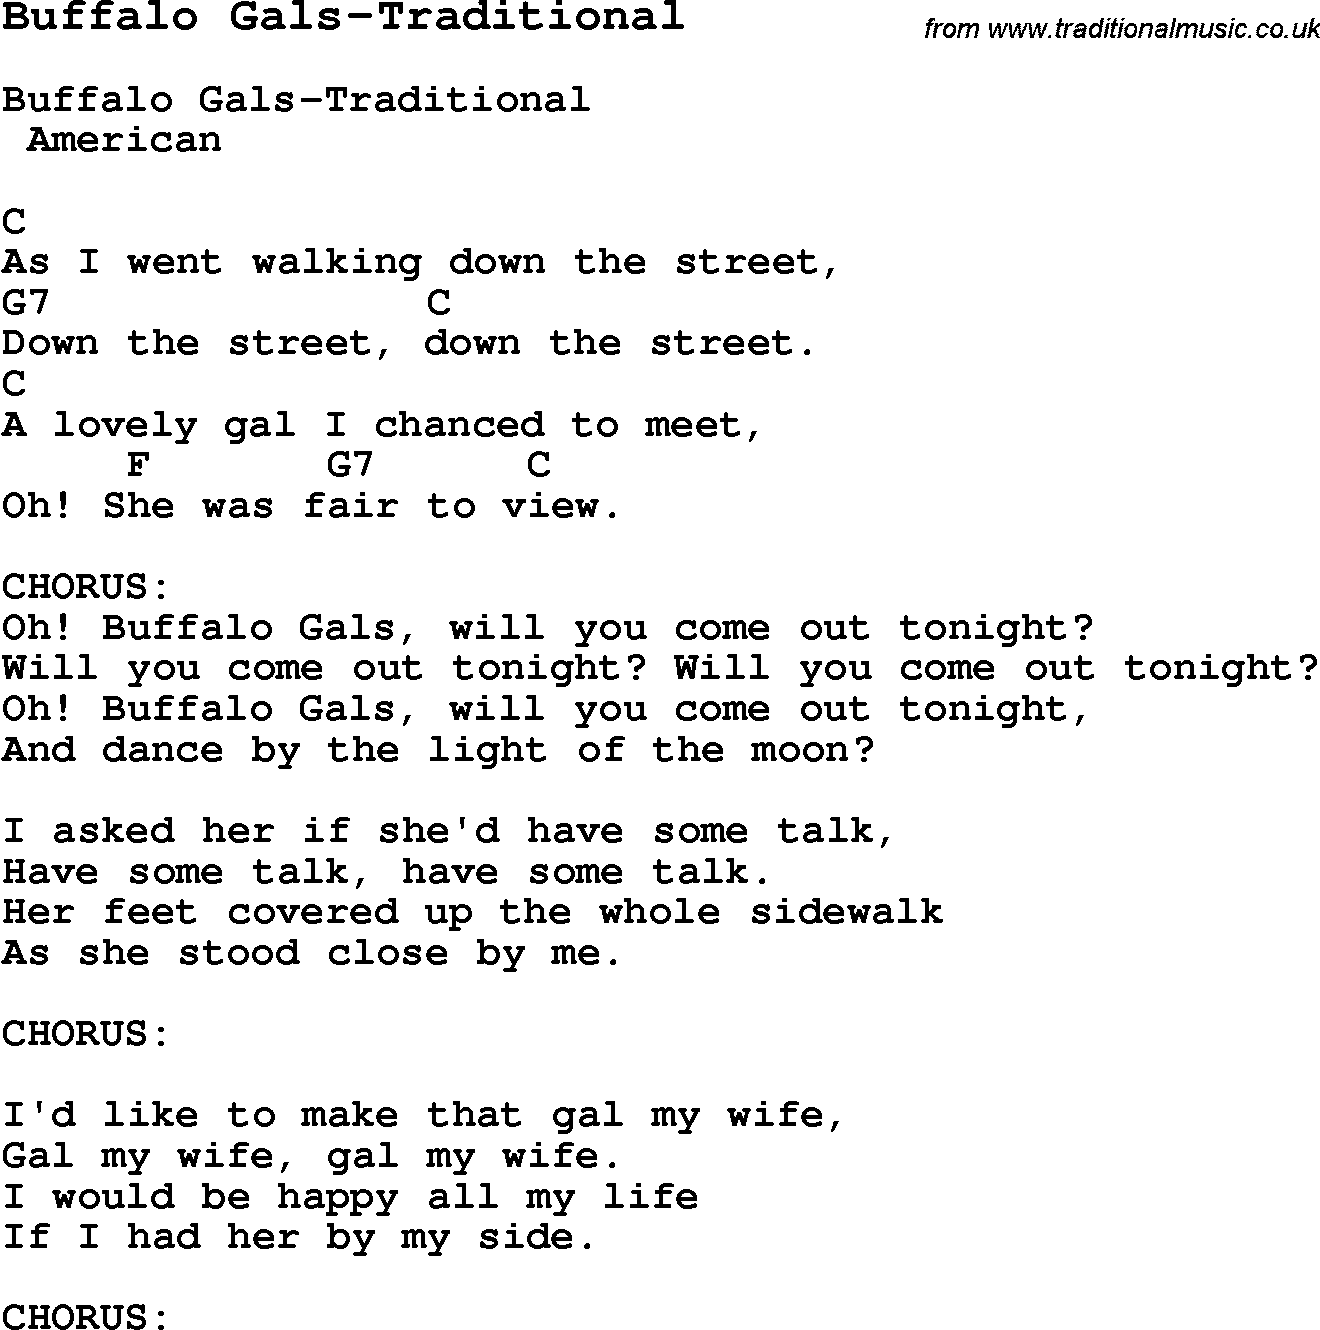 Summer Camp Song, Buffalo Gals-Traditional, with lyrics and